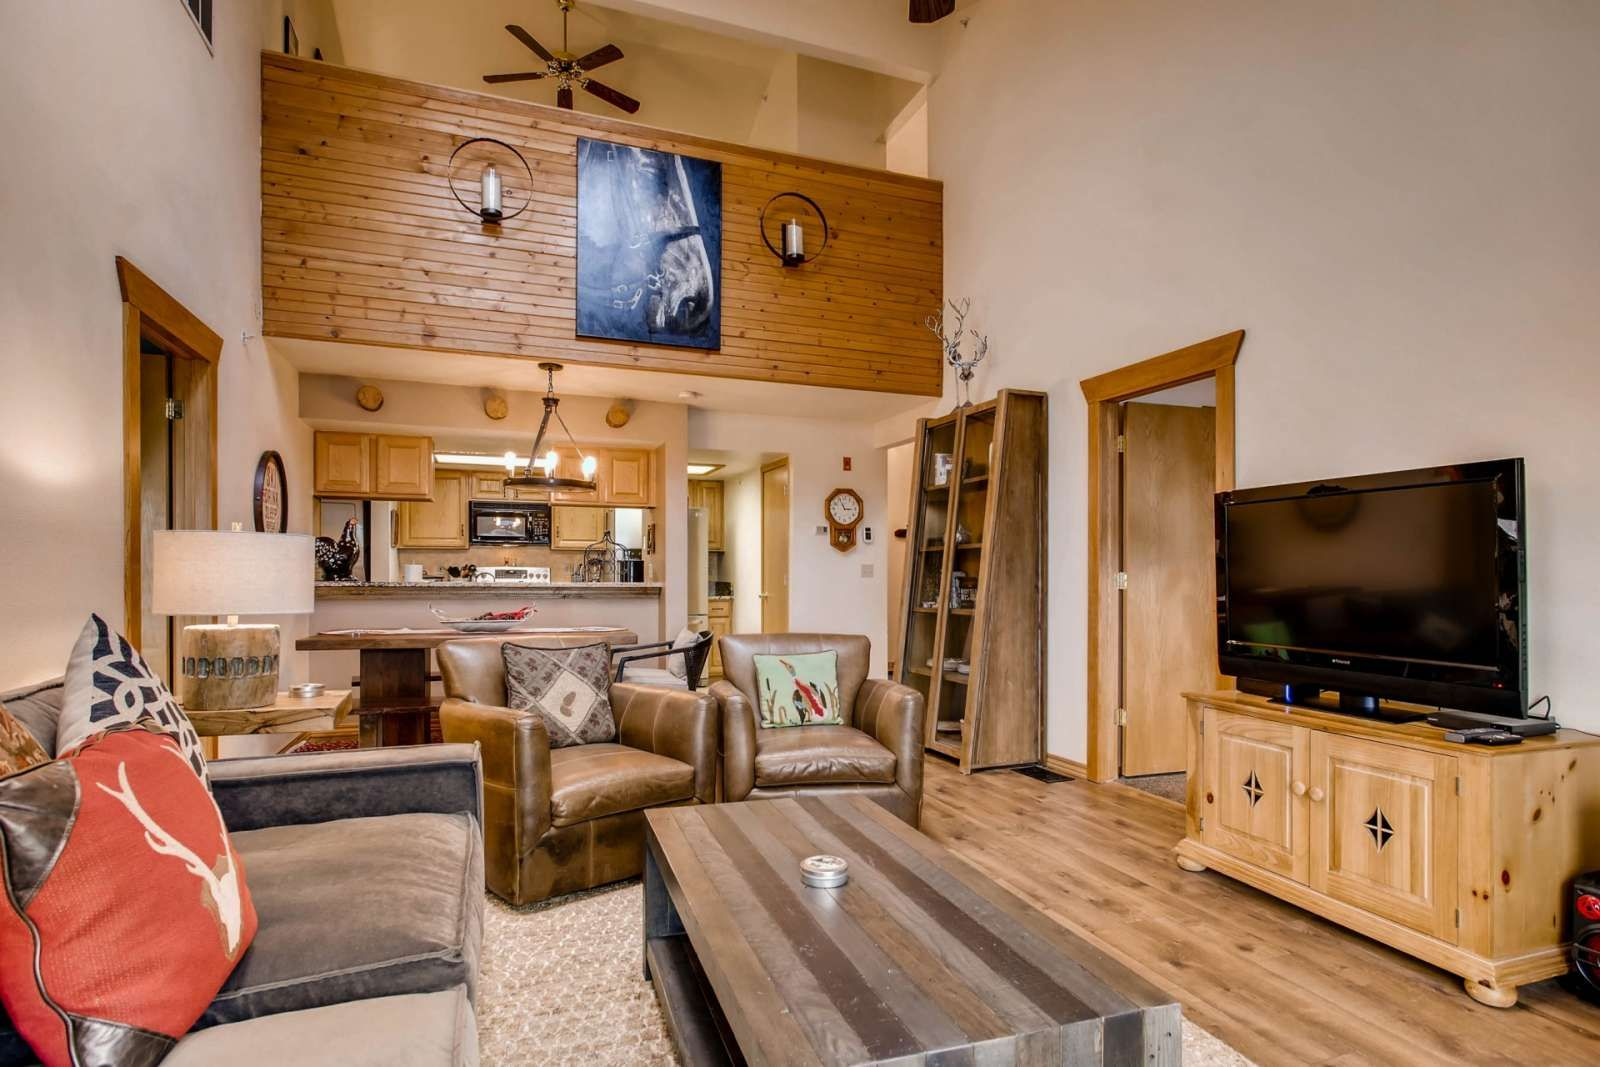 Pin On Copper Mountain Co Vacation Rentals Activities Food And Fun